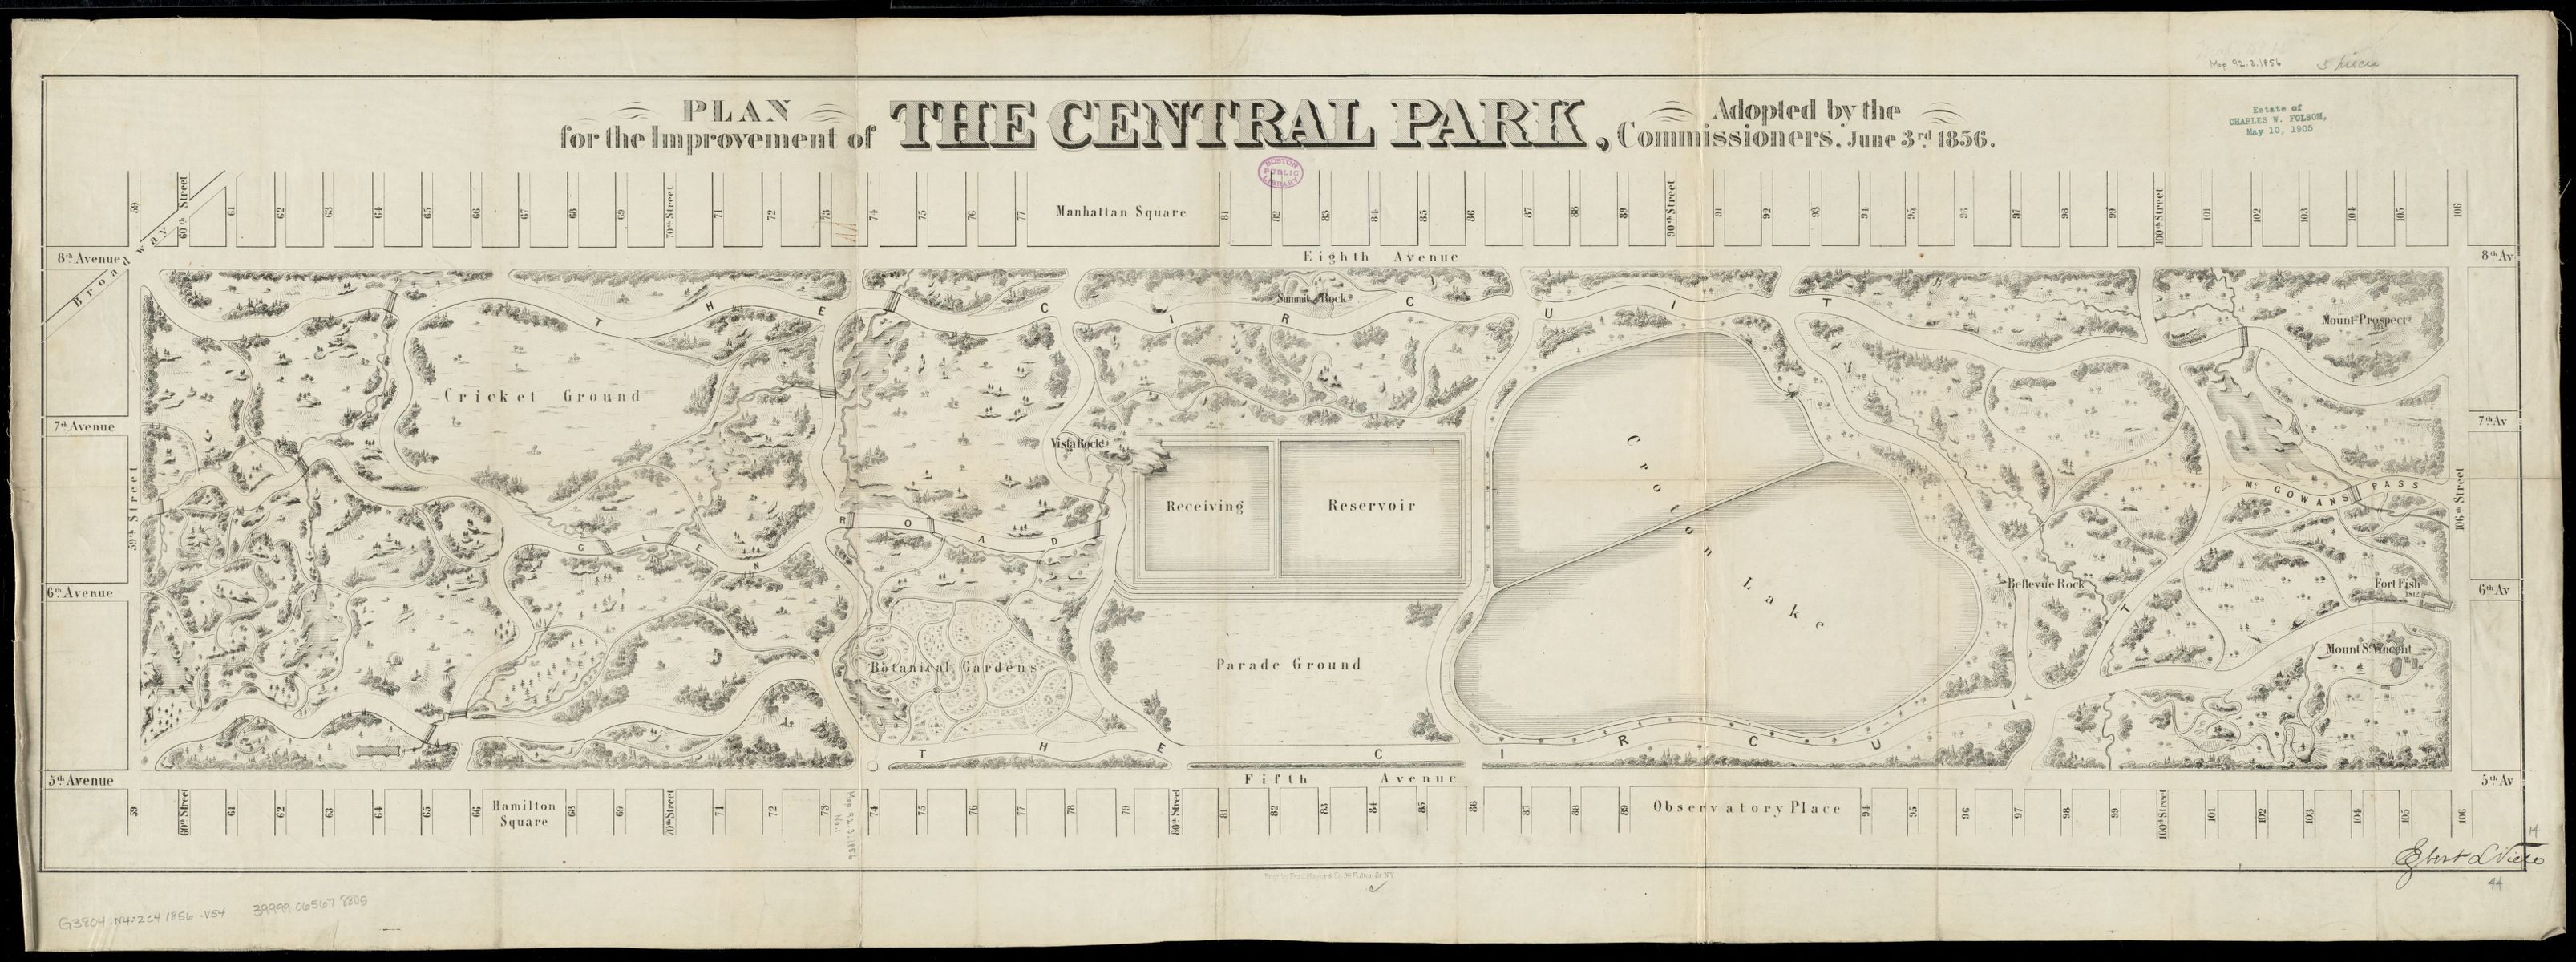 Egbert Ludovicus Viele. Plan for the improvement of the Central Park, adopted by the Commissioners, June 3rd, 1856. 1856.